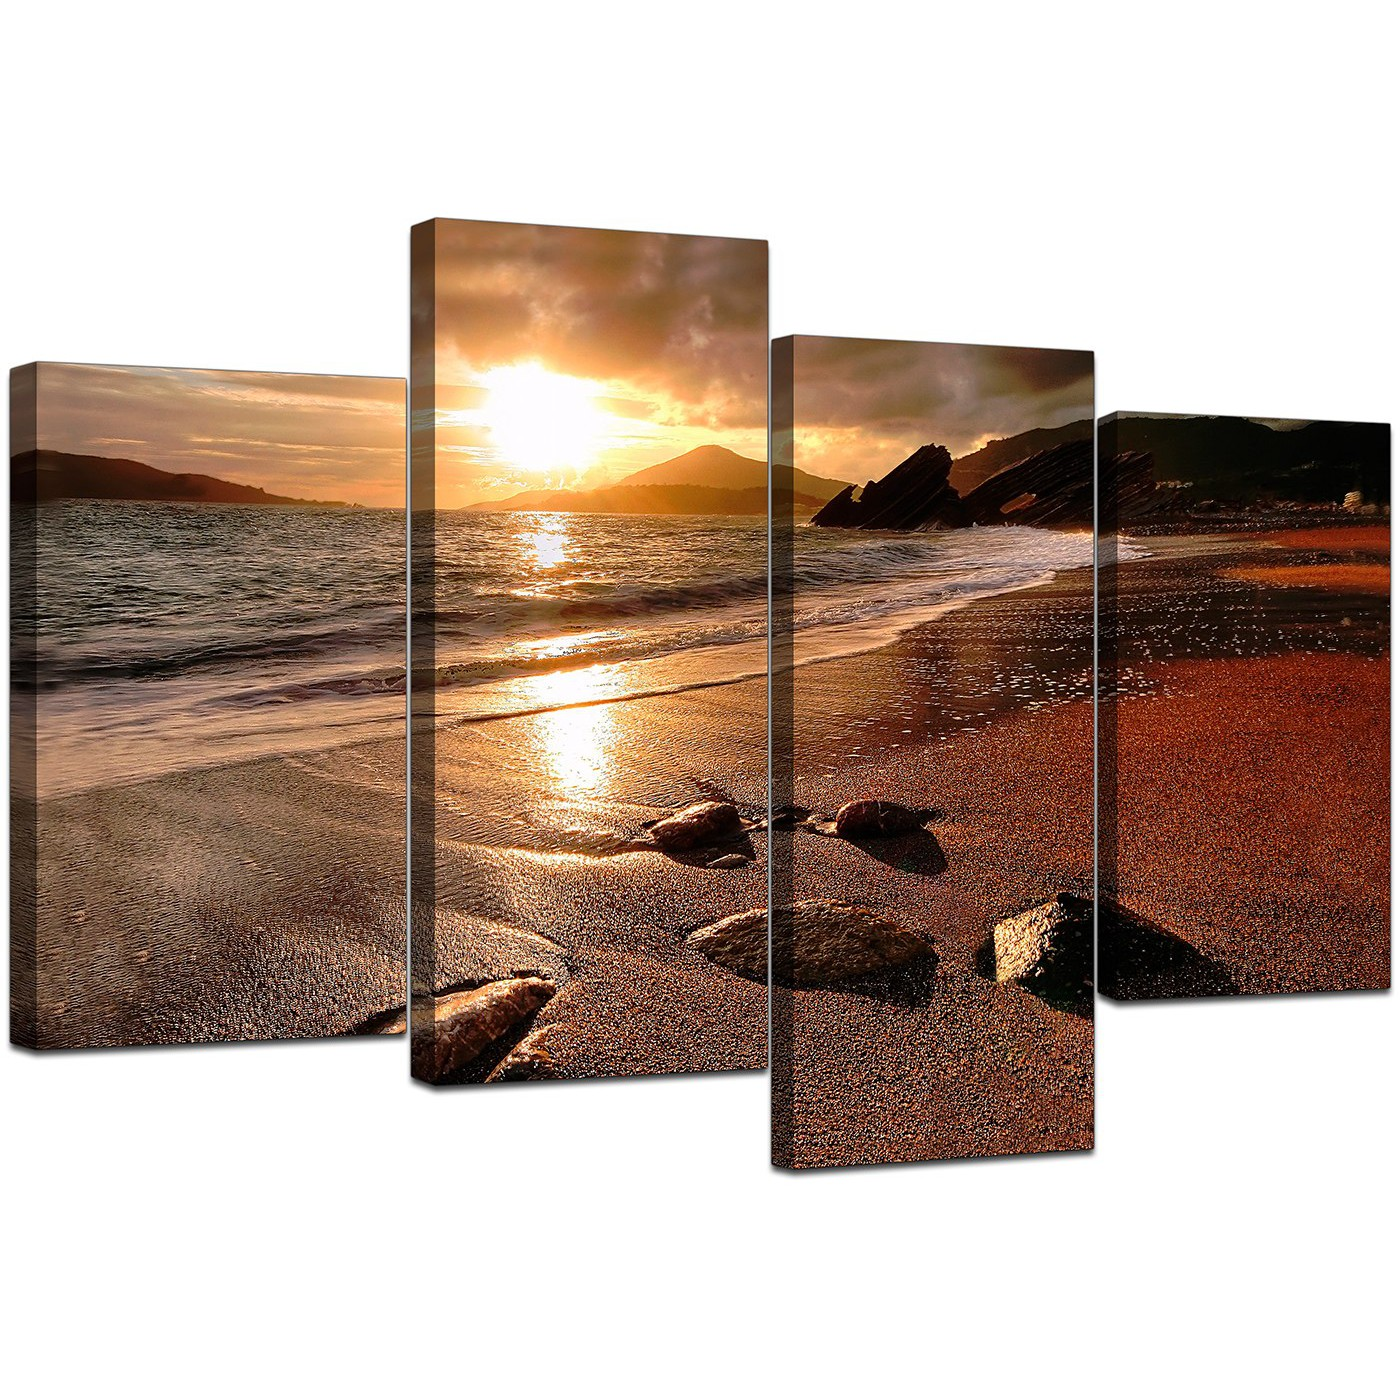 Wall Art Sets For Living Room Canvas Art Of Beach Sunset For Your Living Room 4 Panel